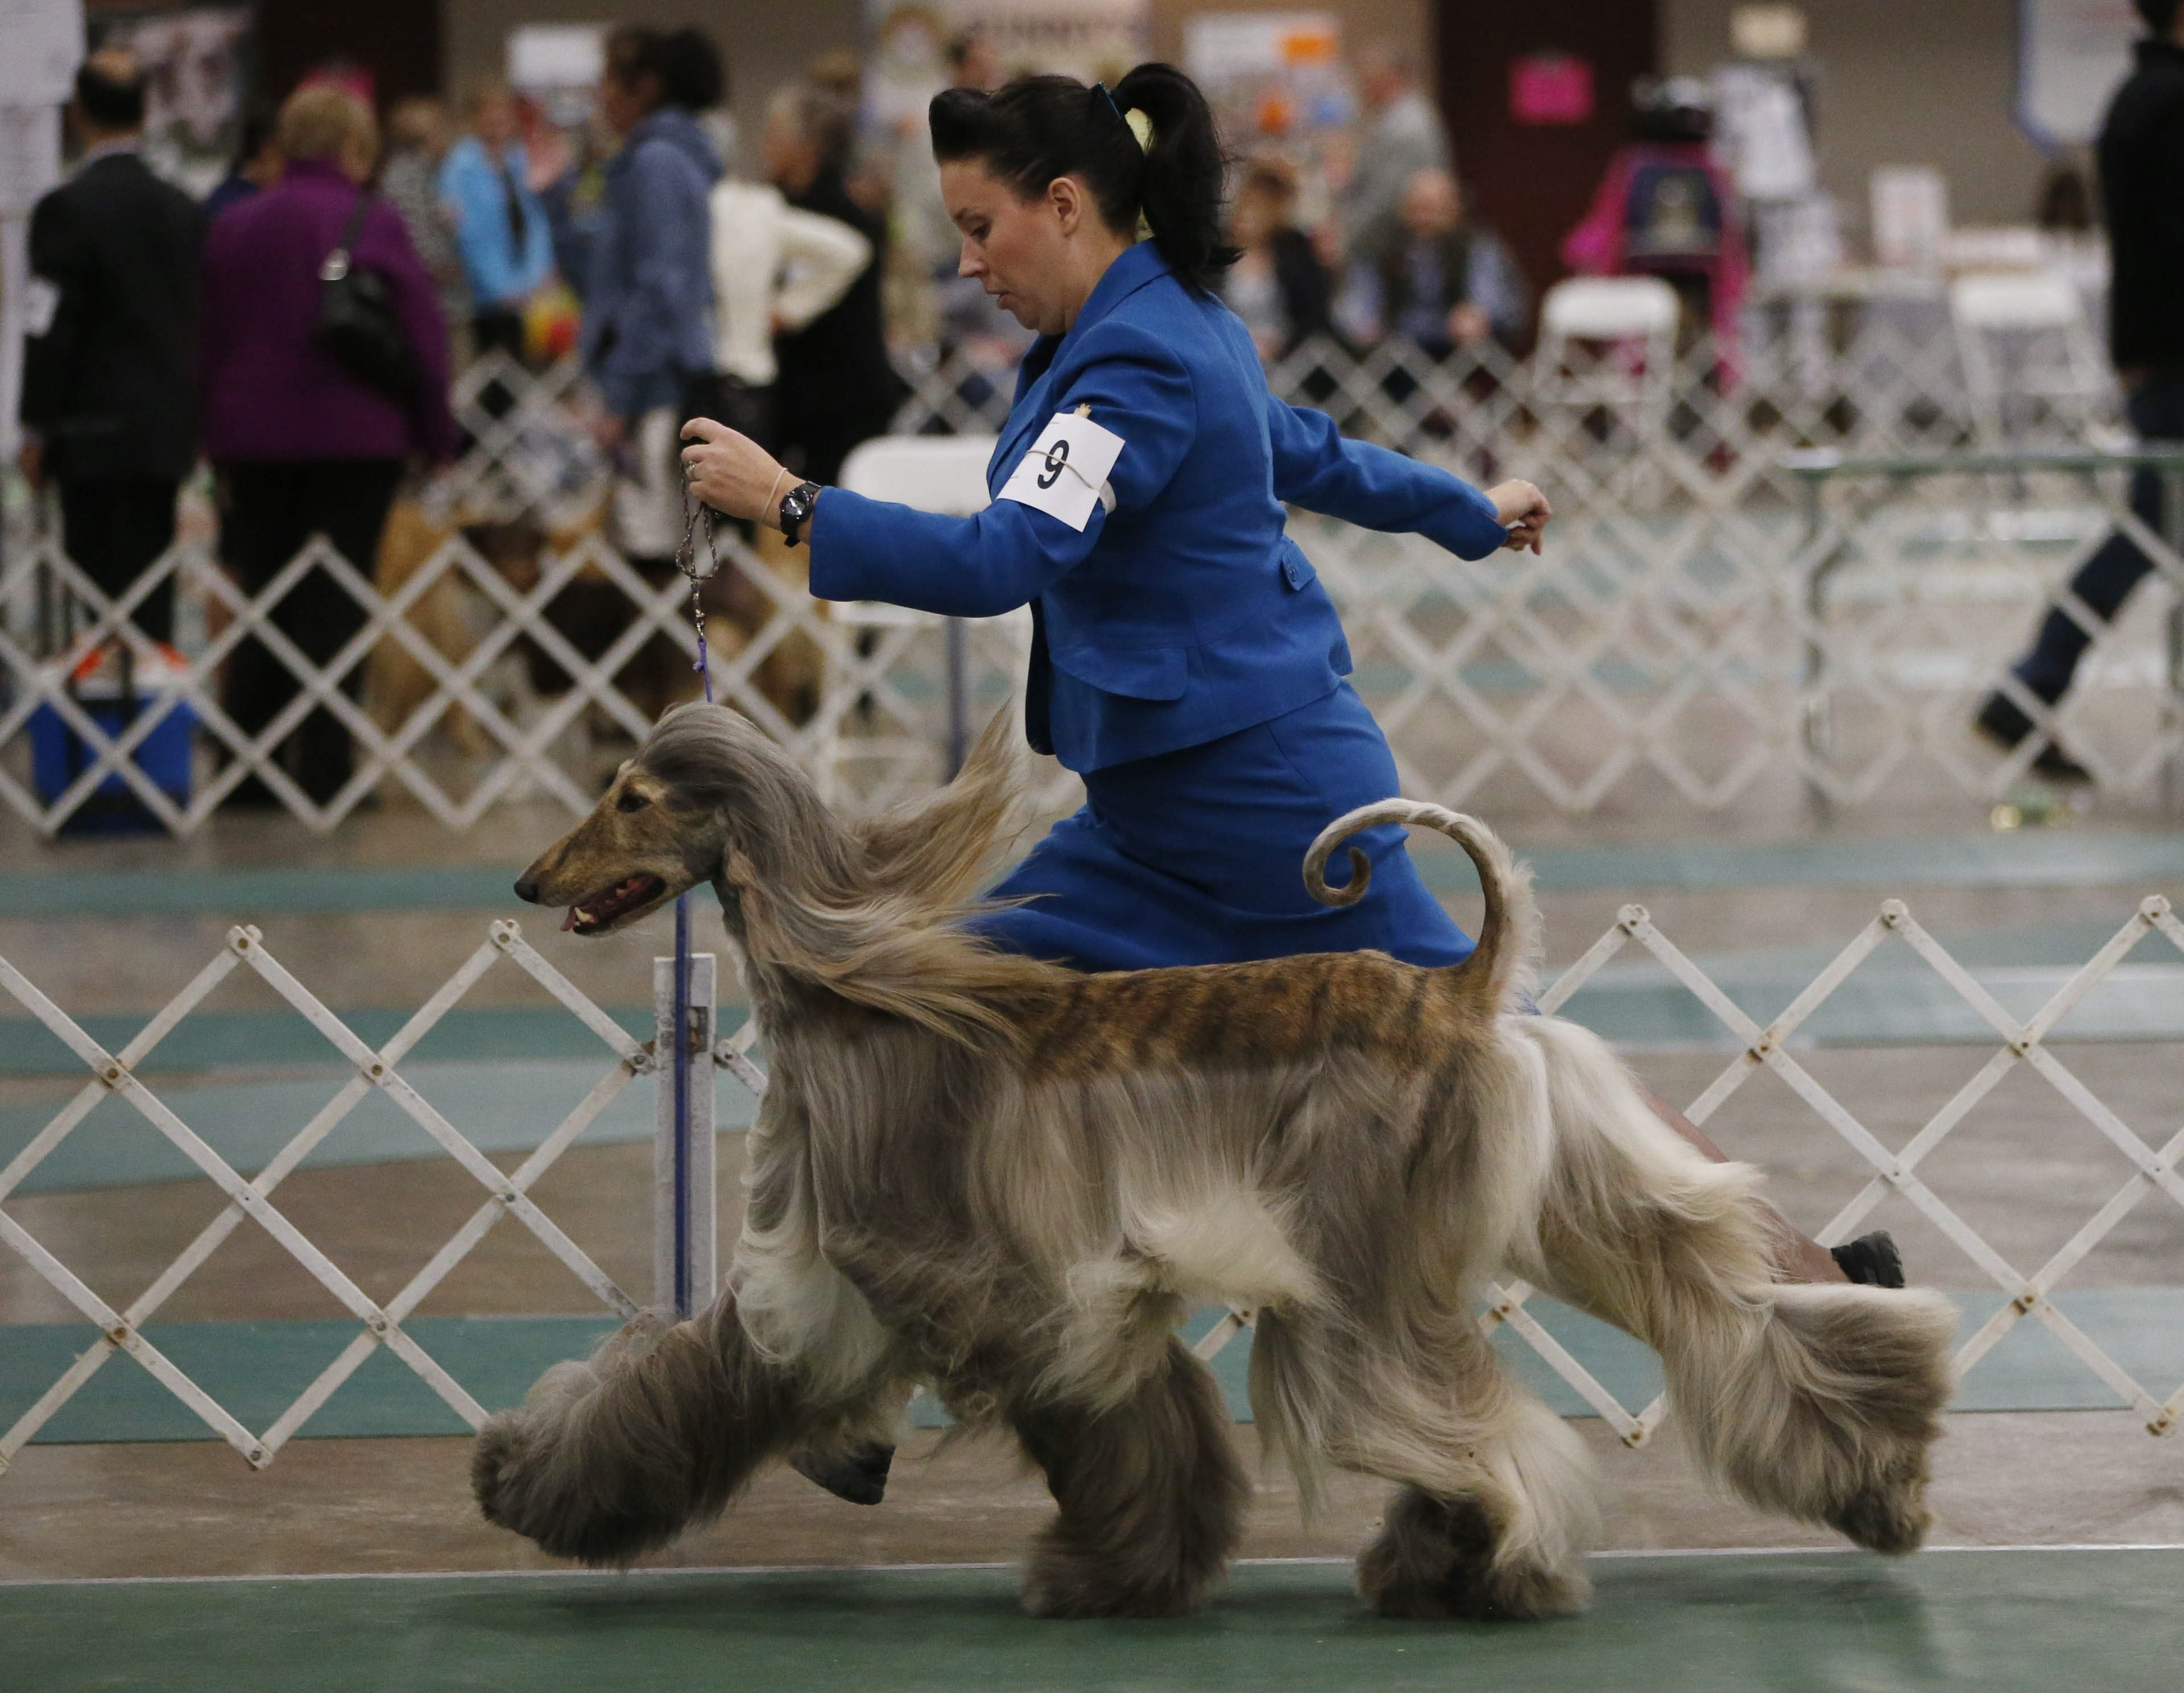 Handler Chris Pollen of Ottawa, Ont., jogs with Jagger, an Afghan hound, while competing on Saturday in the Nickel City Cluster Dog Show at the Hamburg Fairgrounds.